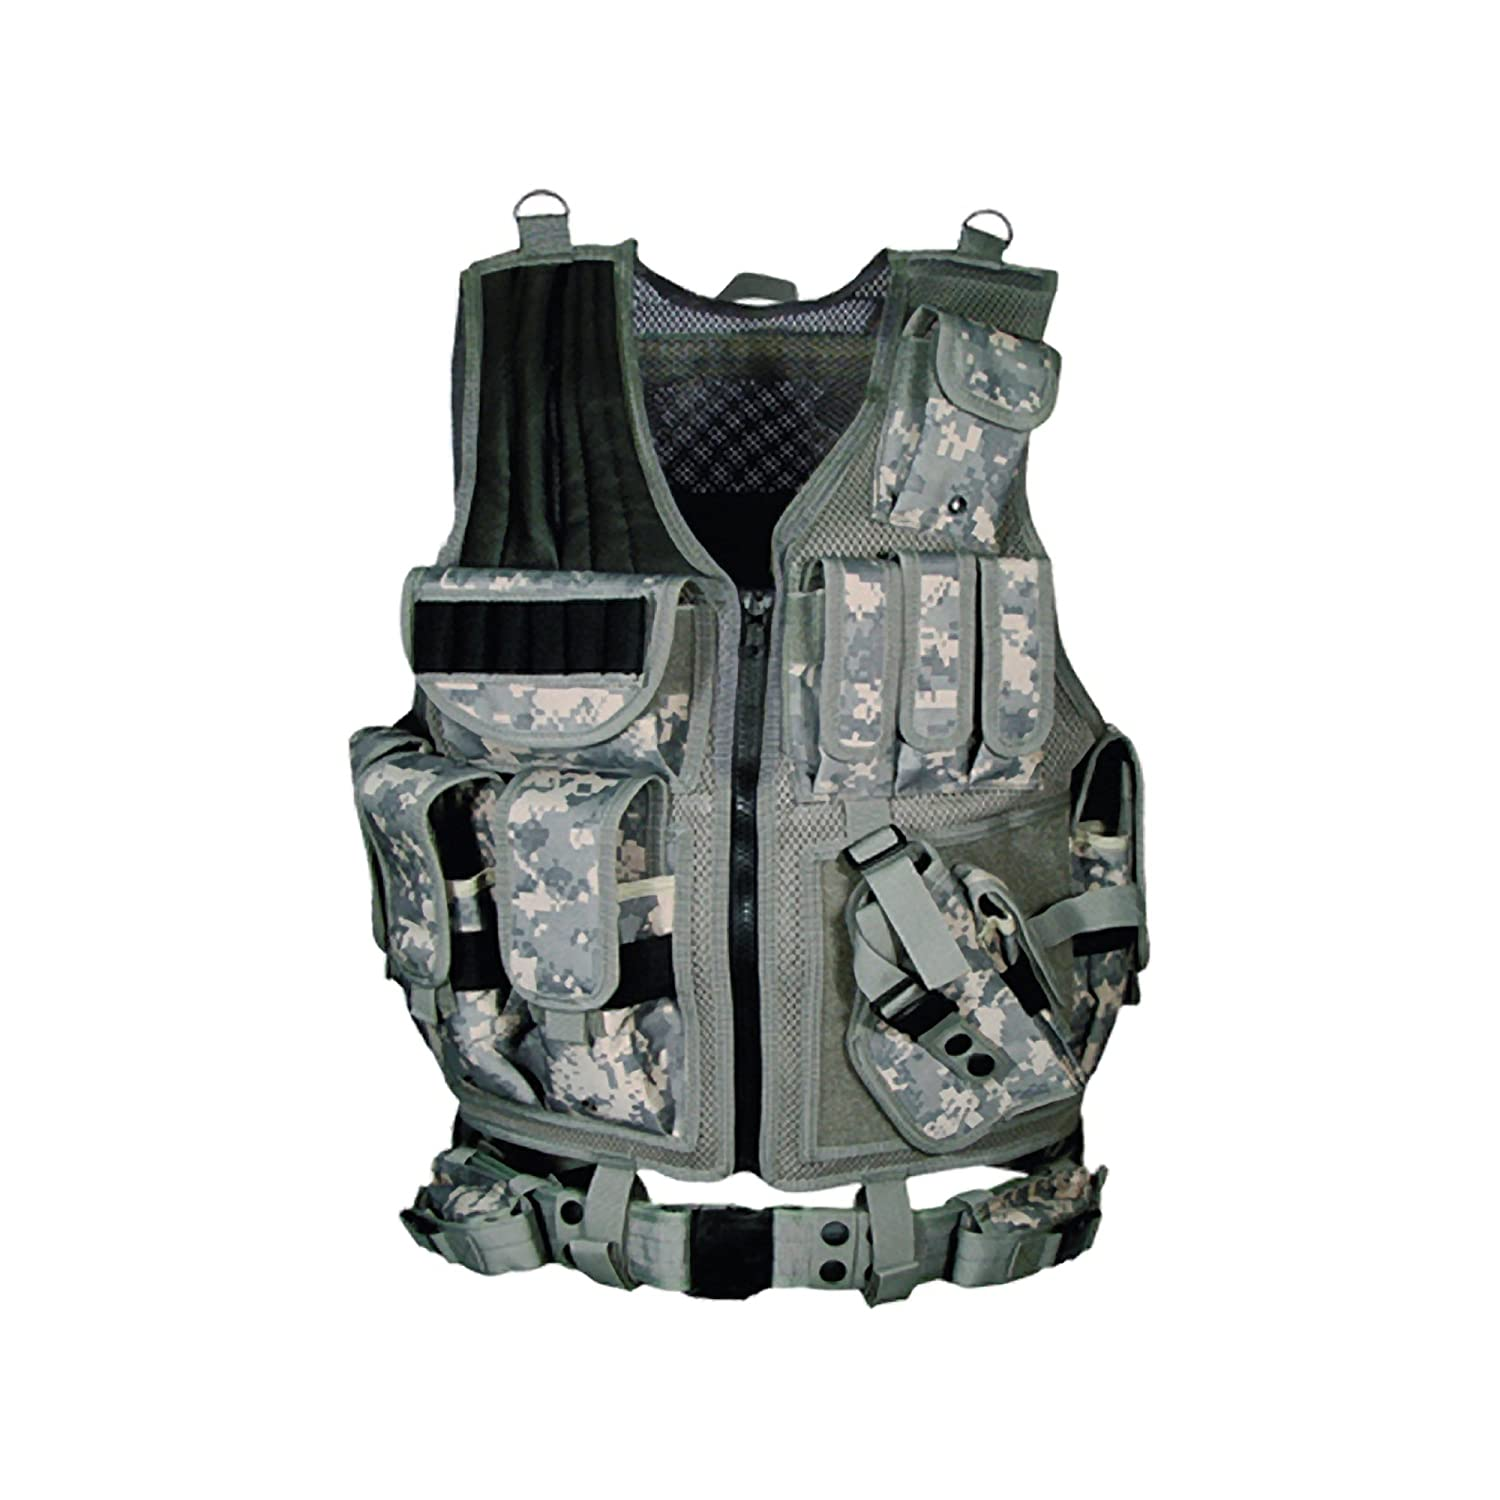 The UTG 547 Law Enforcement Tactical Vest travel product recommended by Stella Samuel on Lifney.